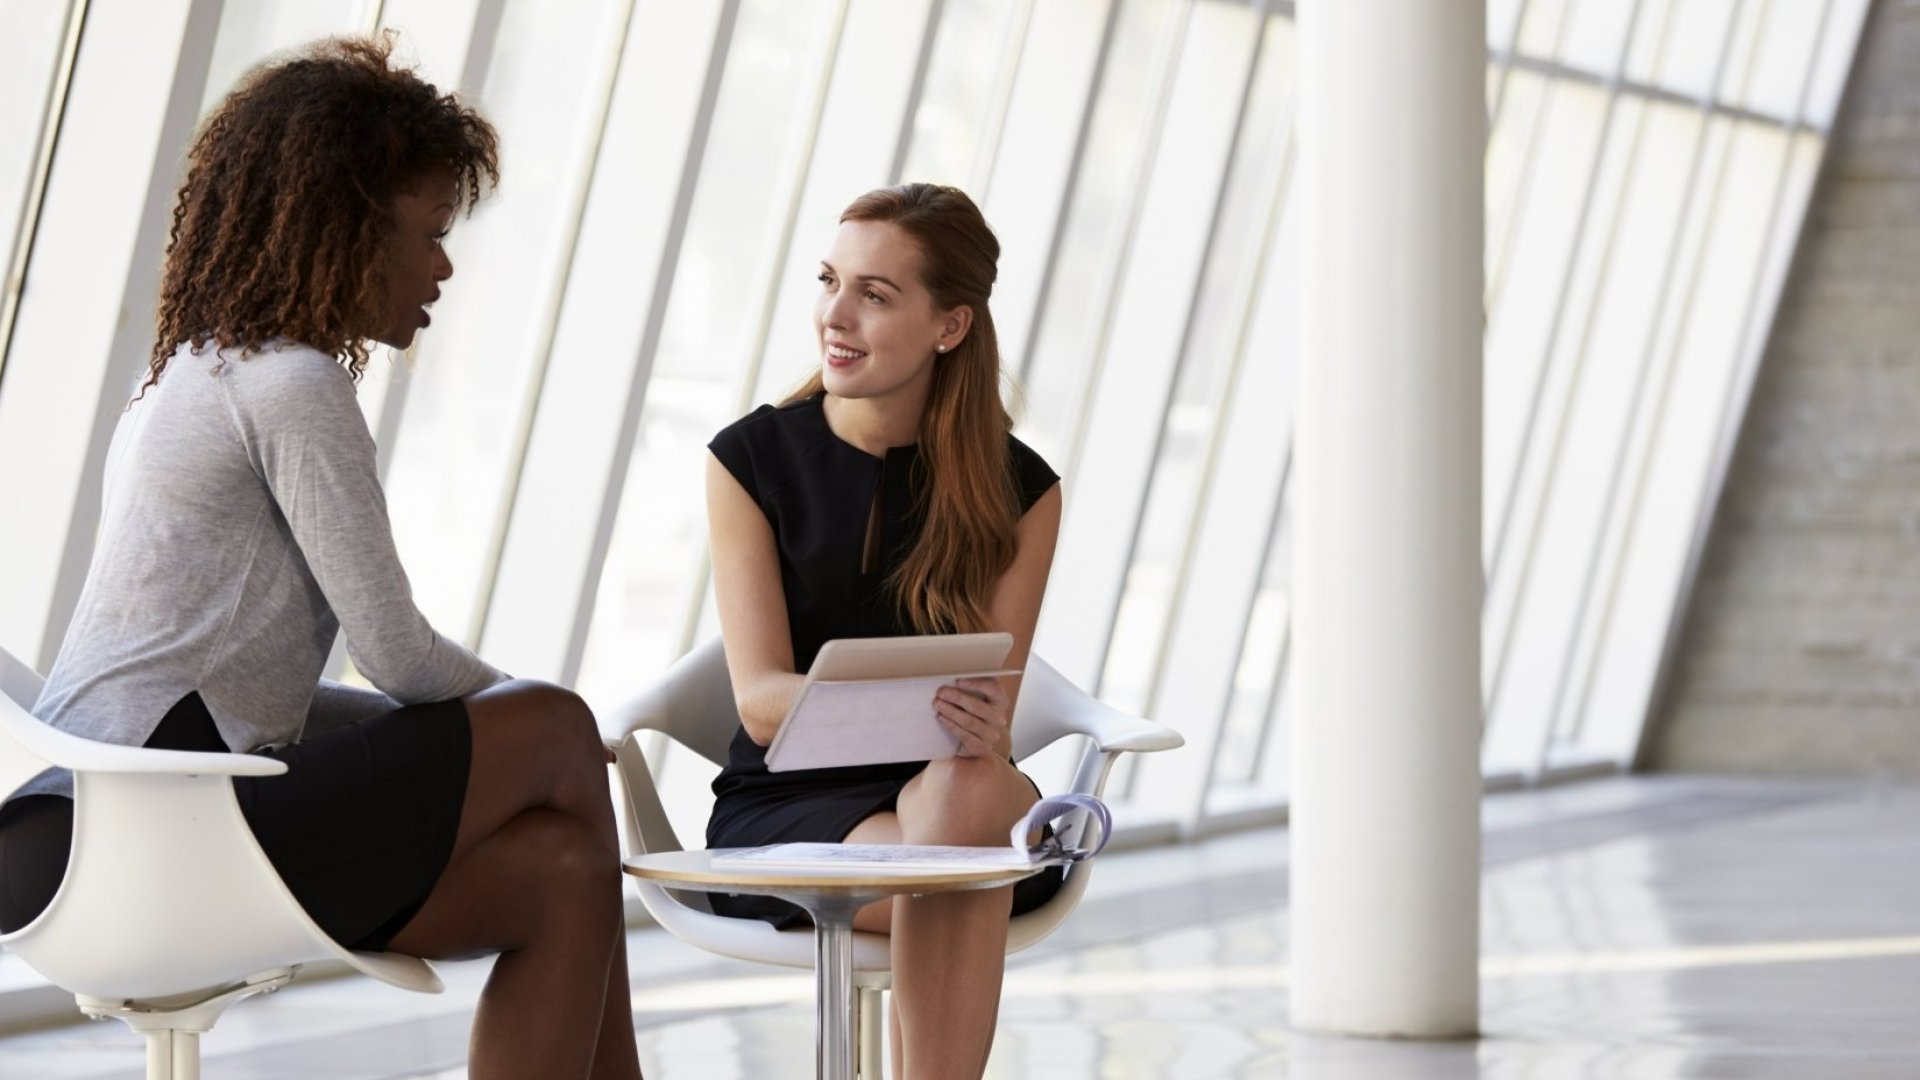 18 Questions the Best Leaders Use to Develop, Engage, and Retain Their Staff